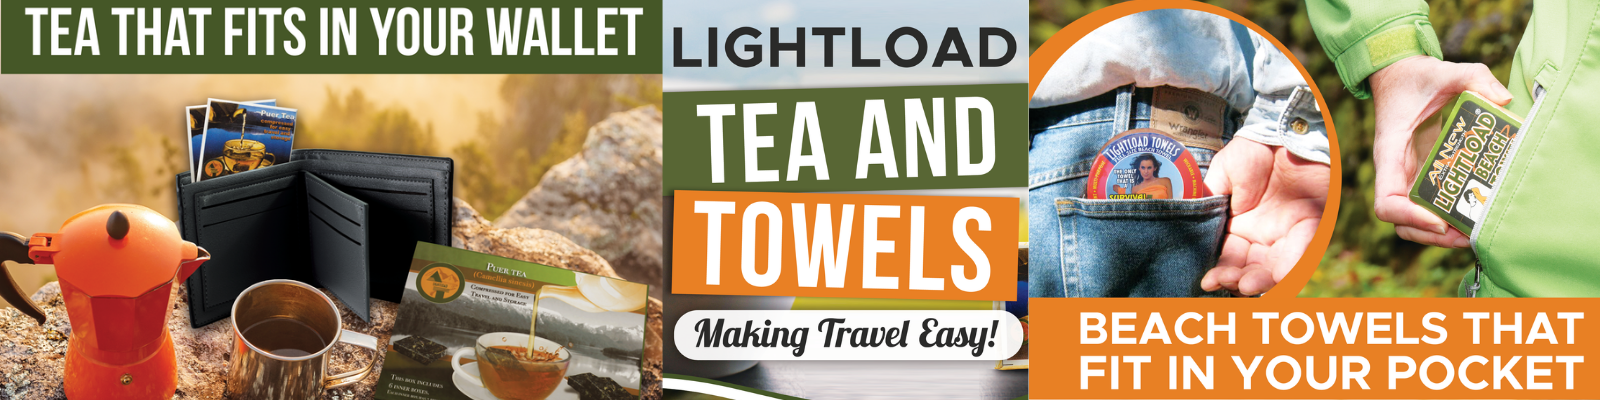 Making travel easy with Lightload